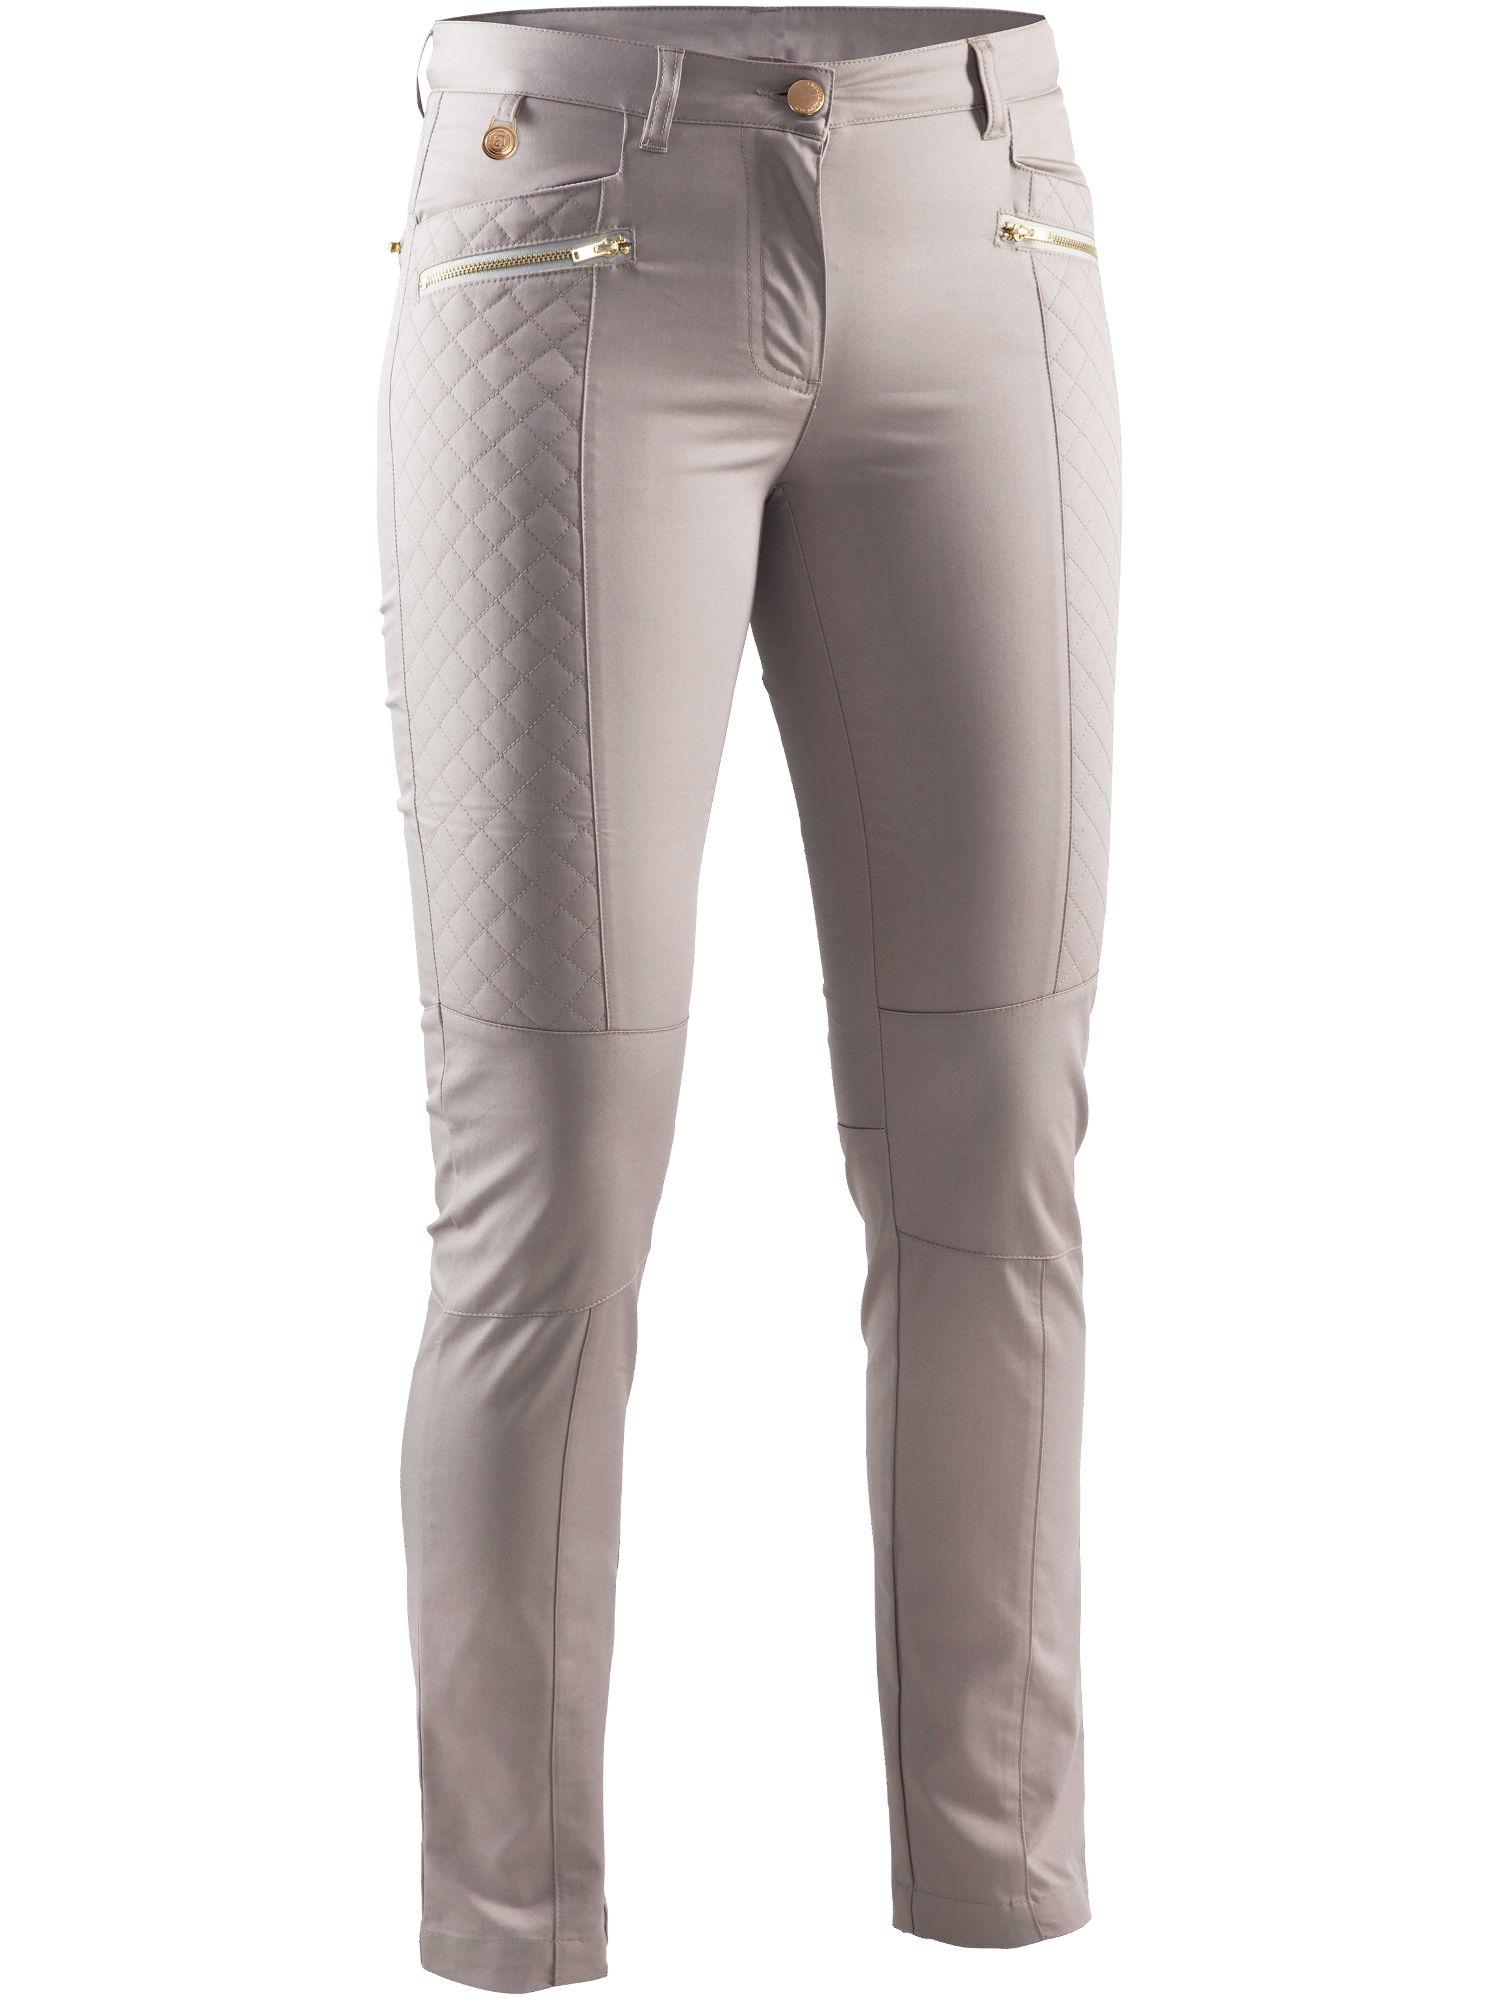 Abacus Lisburn Trousers, White